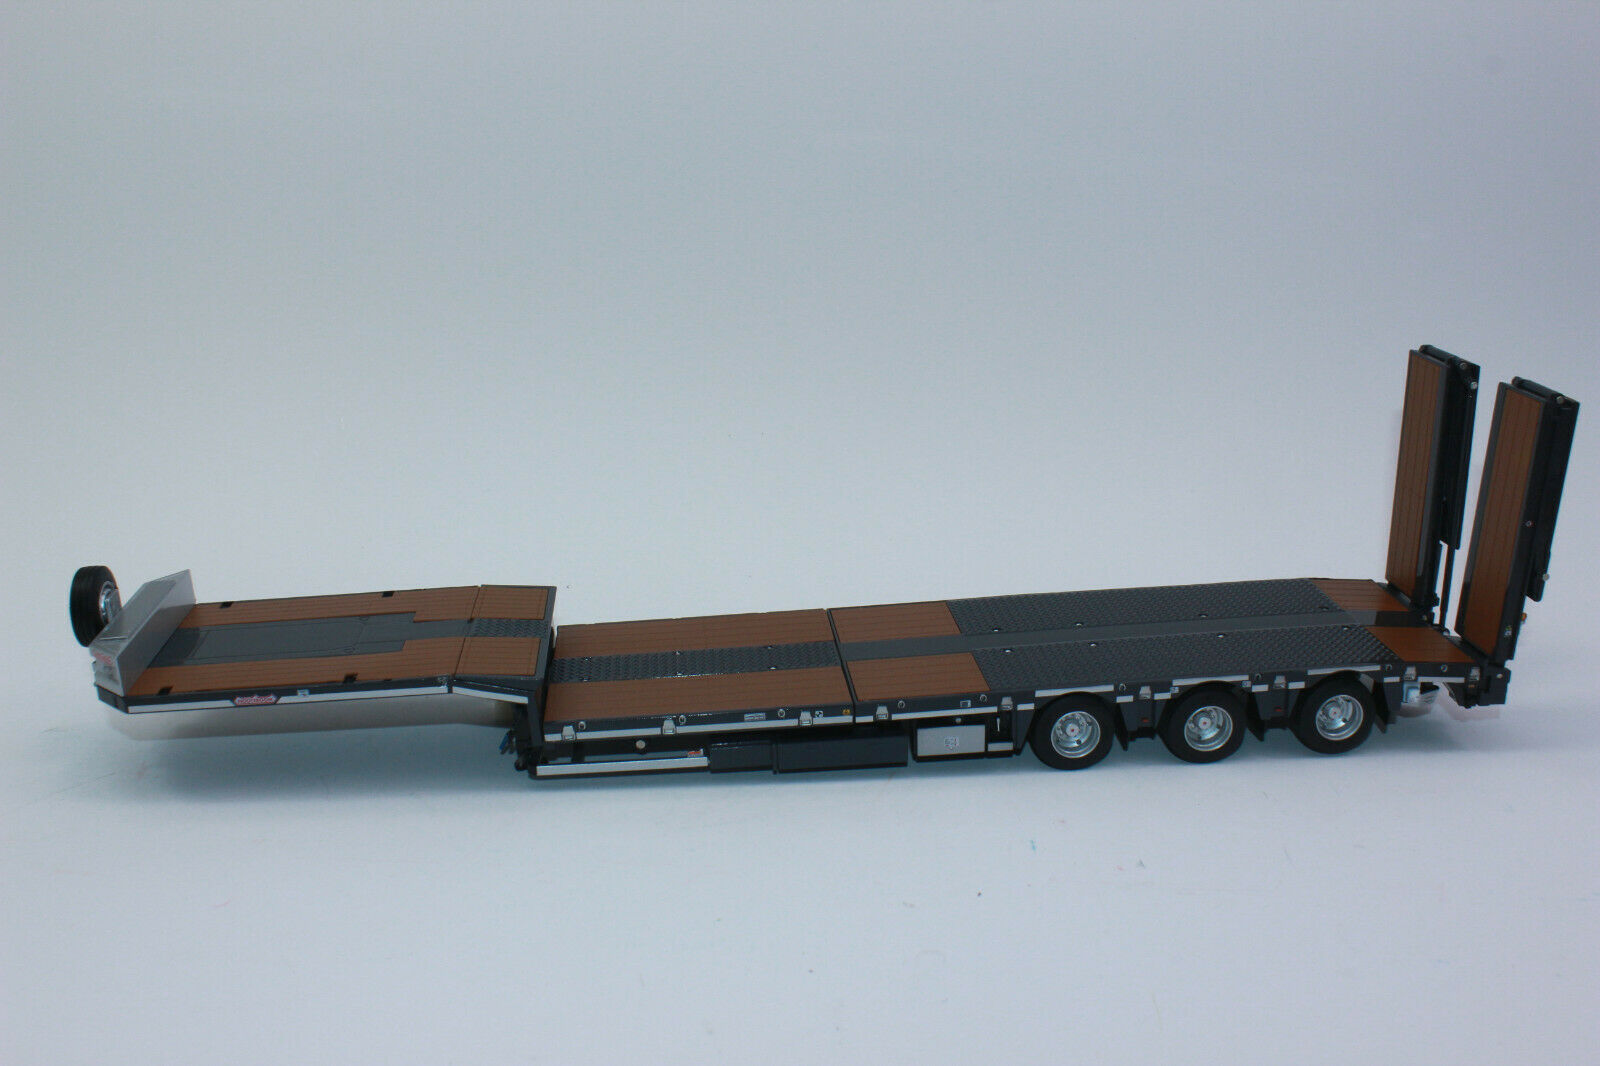 Marge 1812-02 Low Loader 3 AXLE NOOTEBOOM Grey mcos 48-03 New with Original Box  1 32